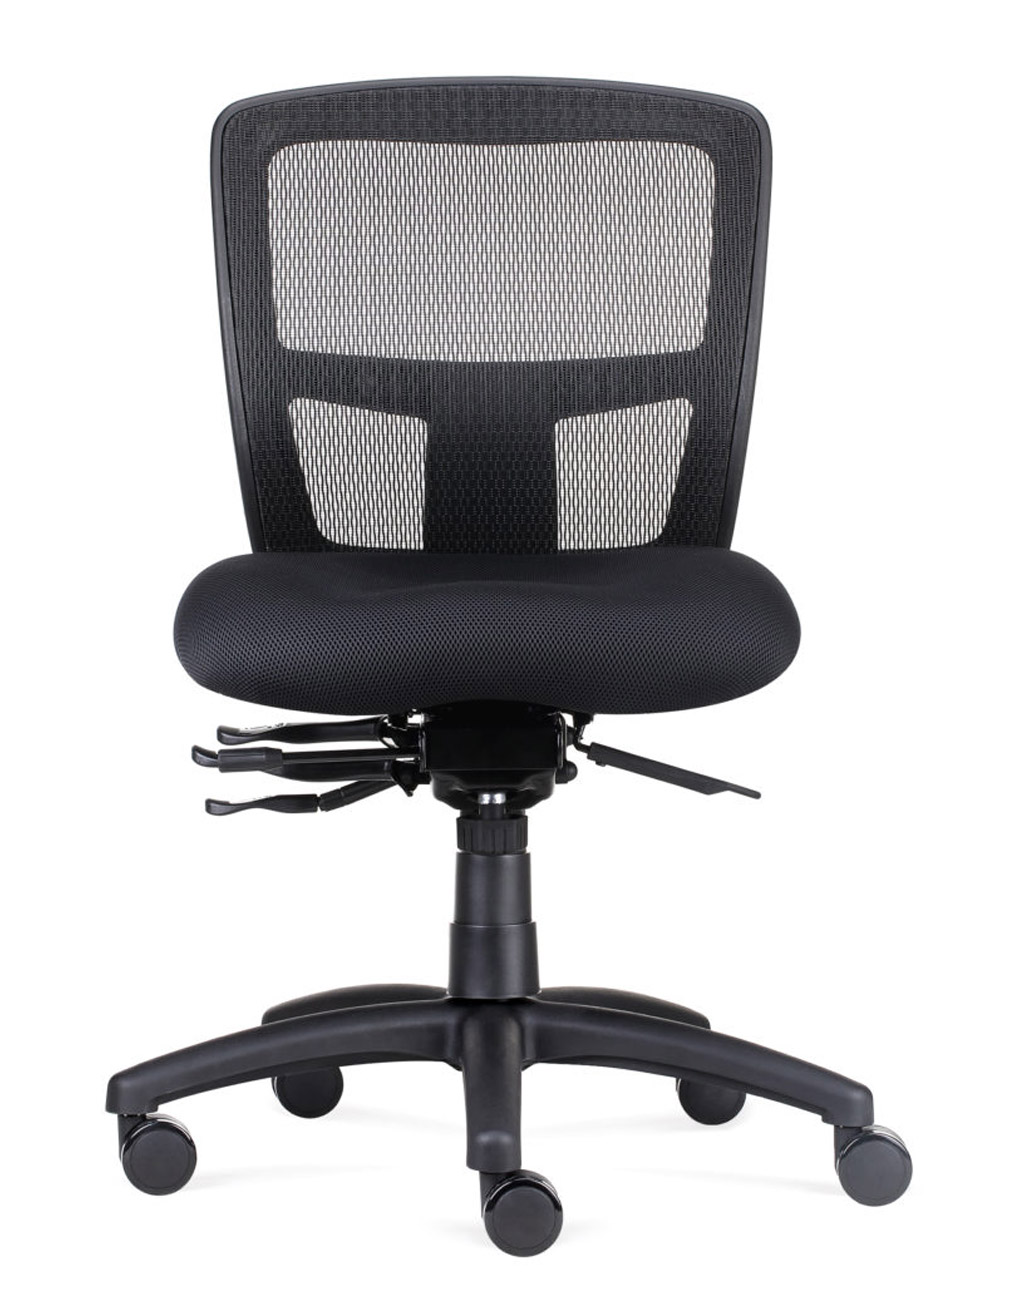 ergo task chair epic office furniture. Black Bedroom Furniture Sets. Home Design Ideas